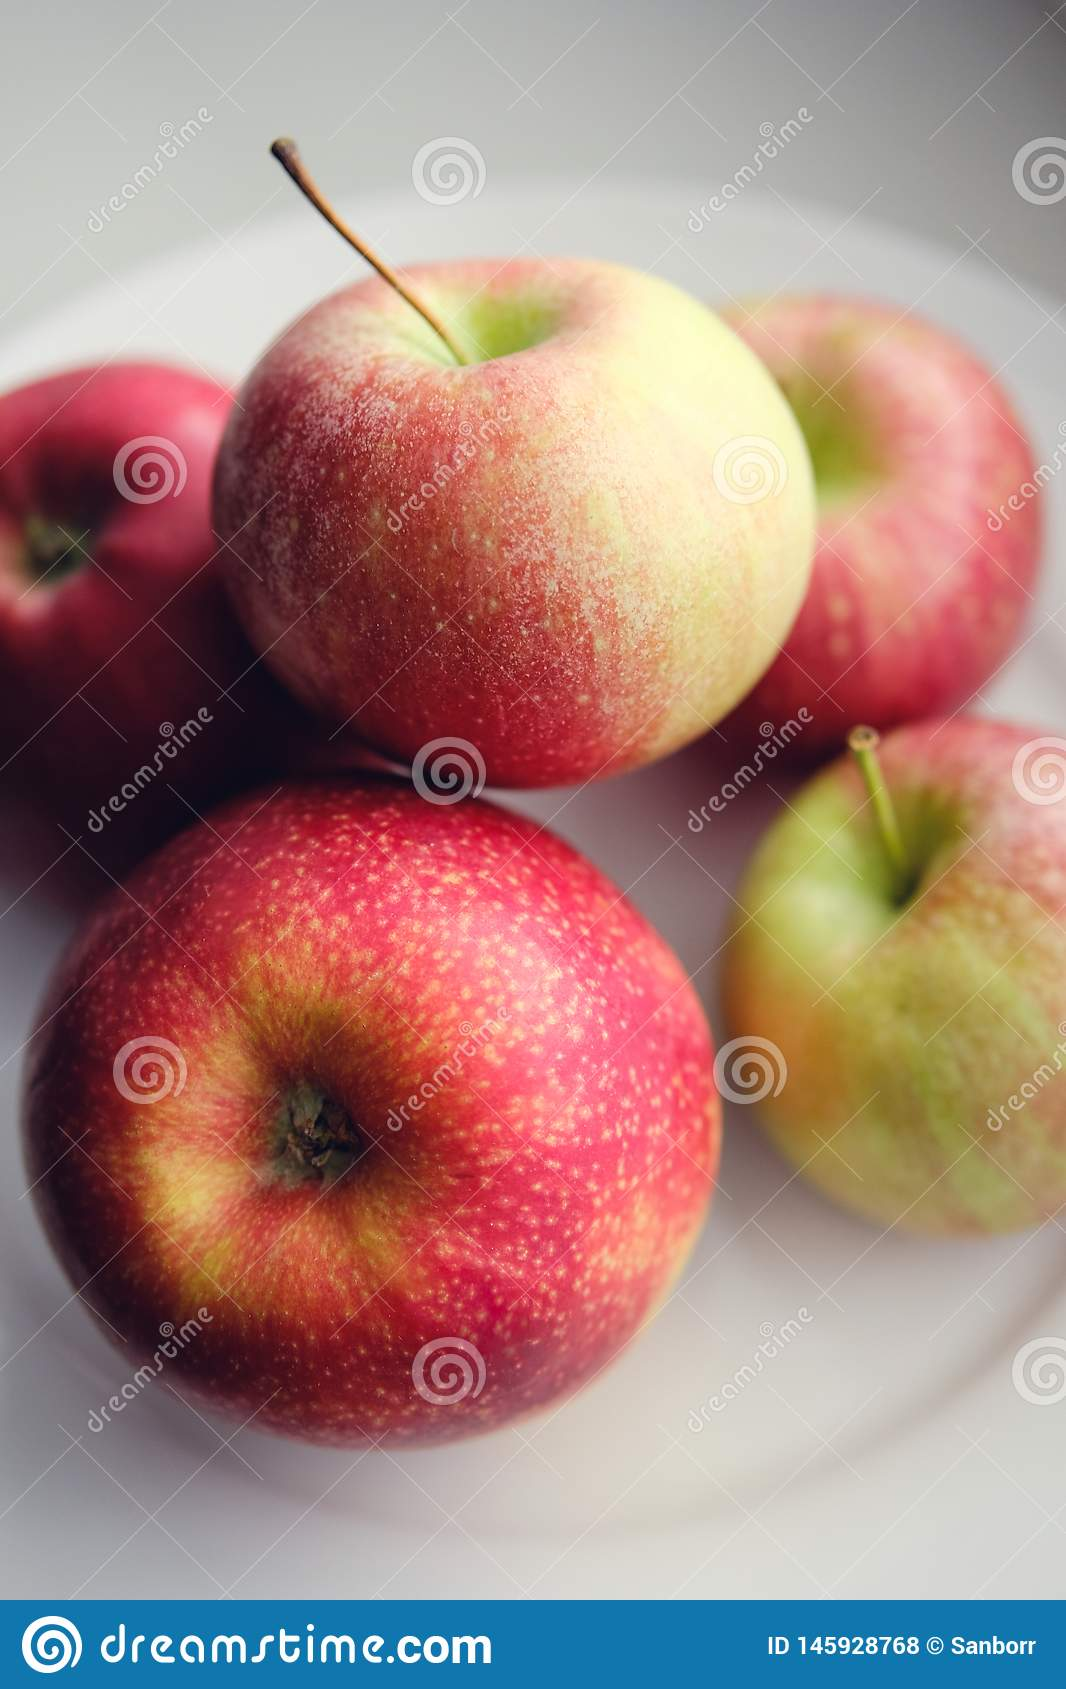 Fresh red apples on a white plate. Healthy diet